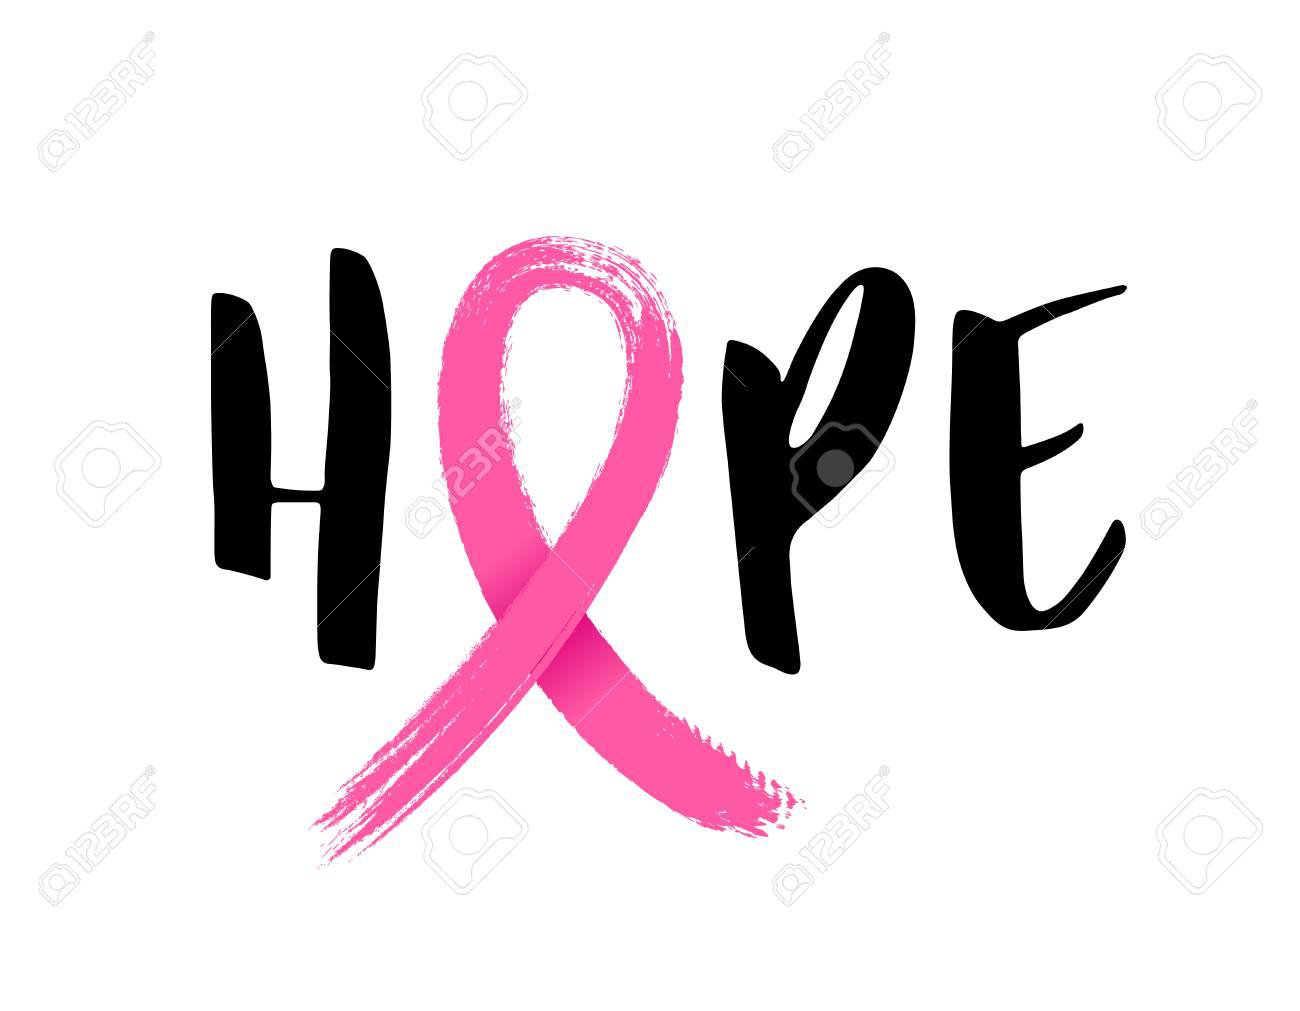 breast cancer pink ribbons posters - Google Search